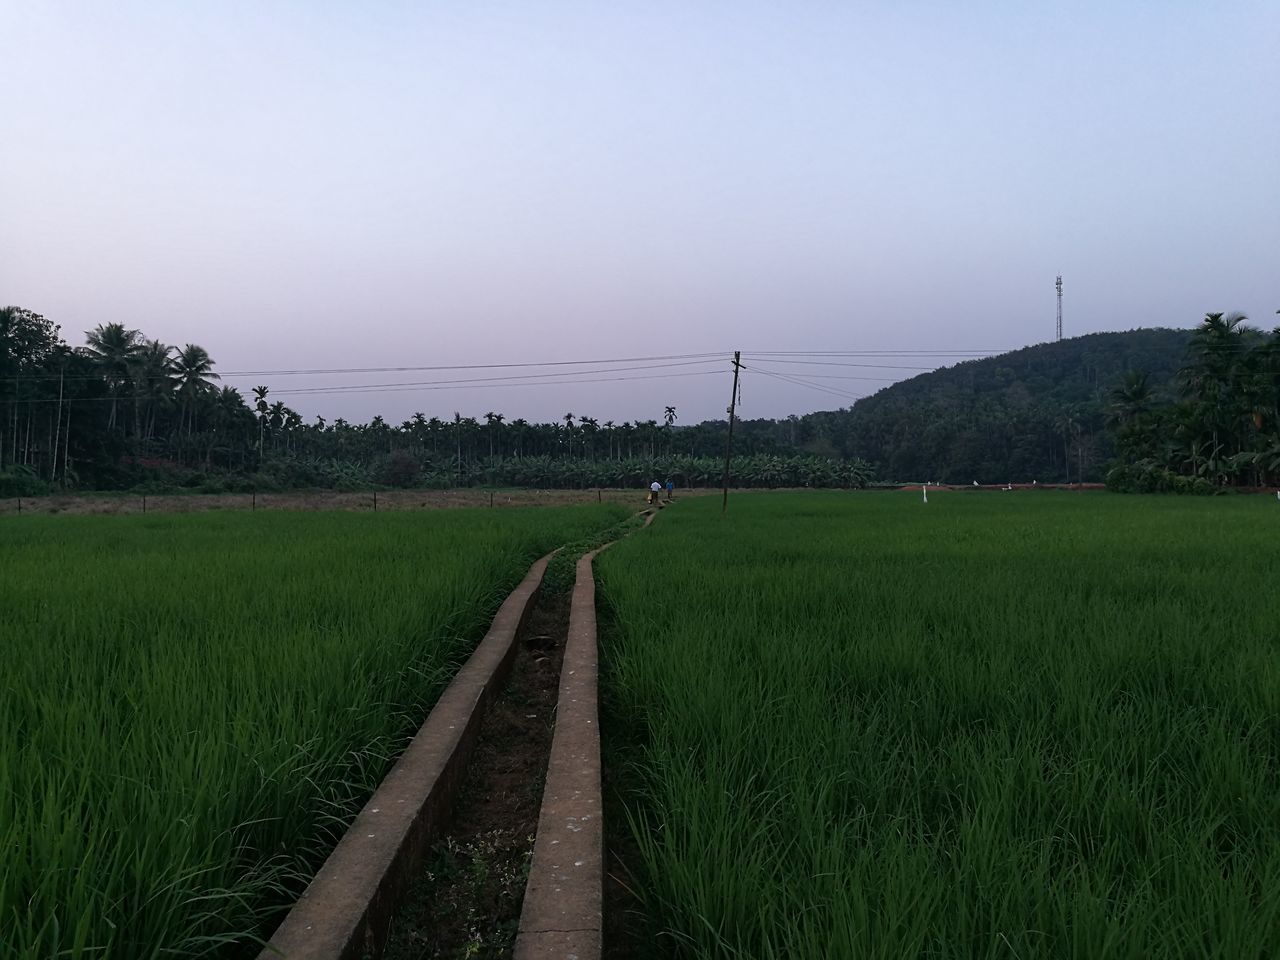 field, growth, grass, agriculture, tranquil scene, nature, clear sky, green color, landscape, beauty in nature, outdoors, rural scene, sky, no people, scenics, tranquility, day, animal themes, tree, rice paddy